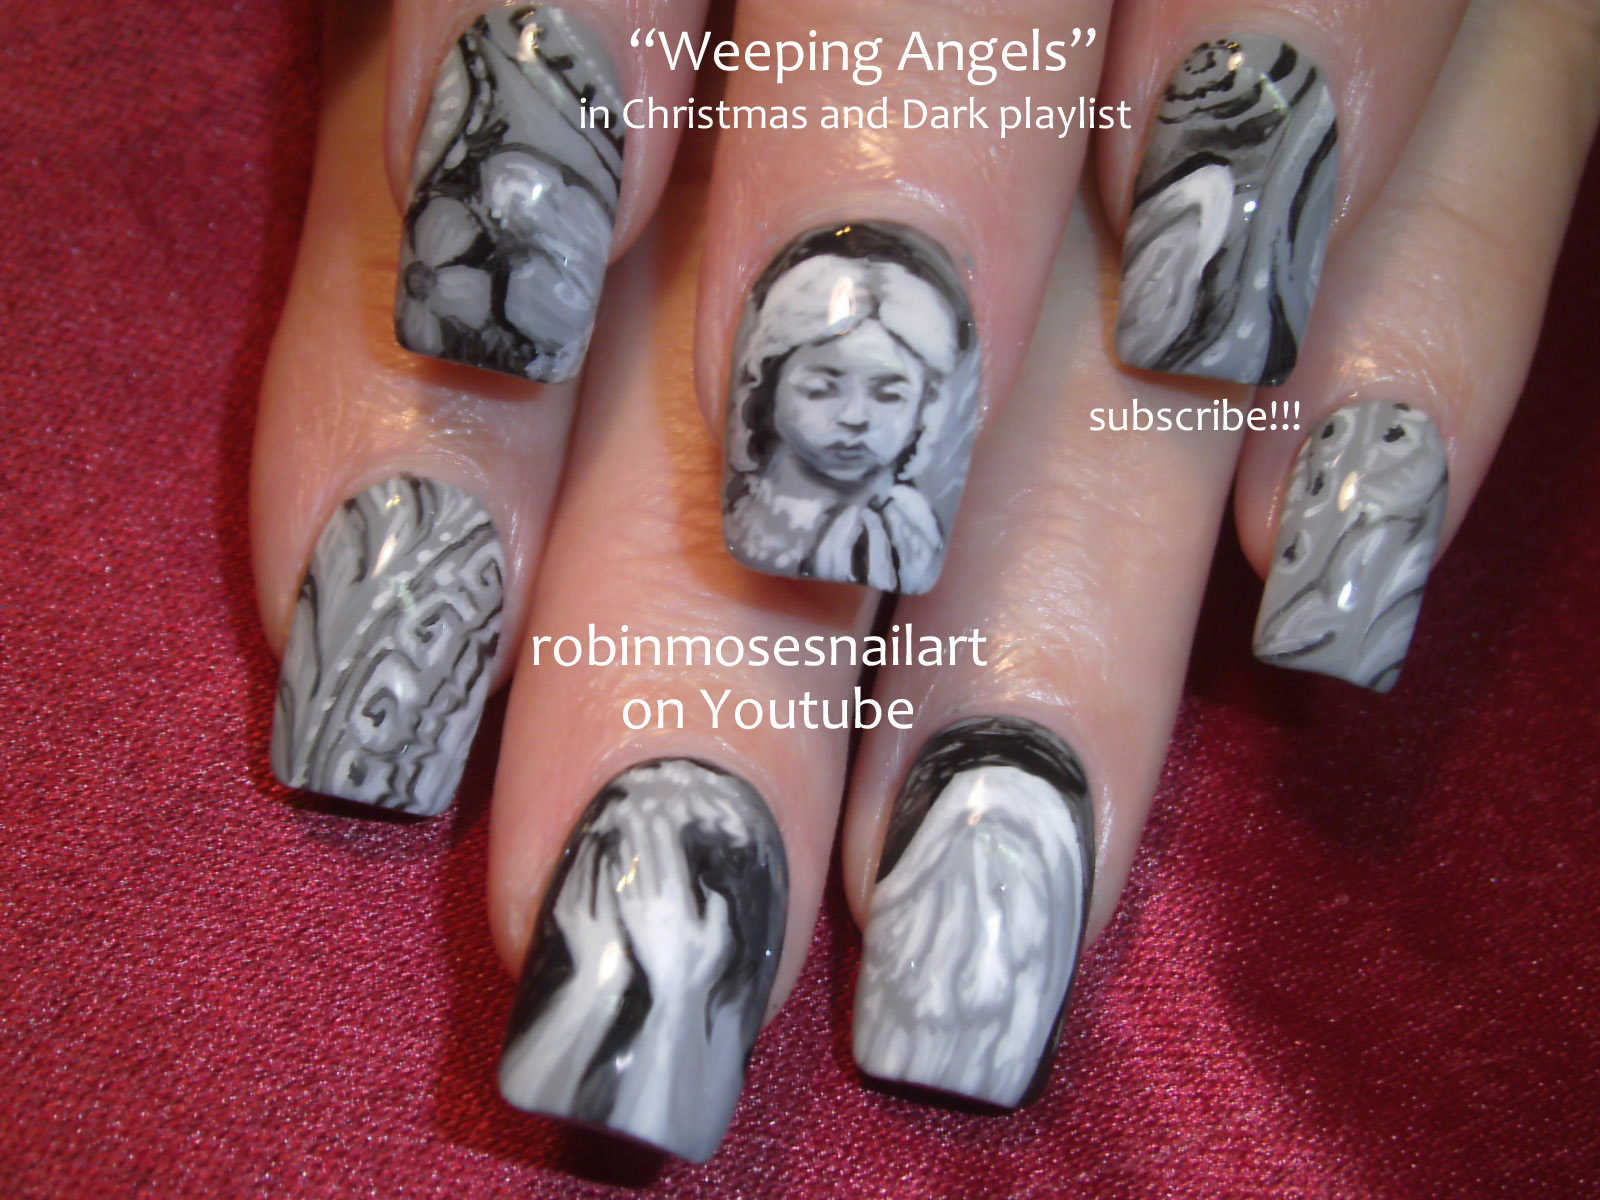 Weeping Angels Weeping Angel Nail Art Doctor Who Nail Art